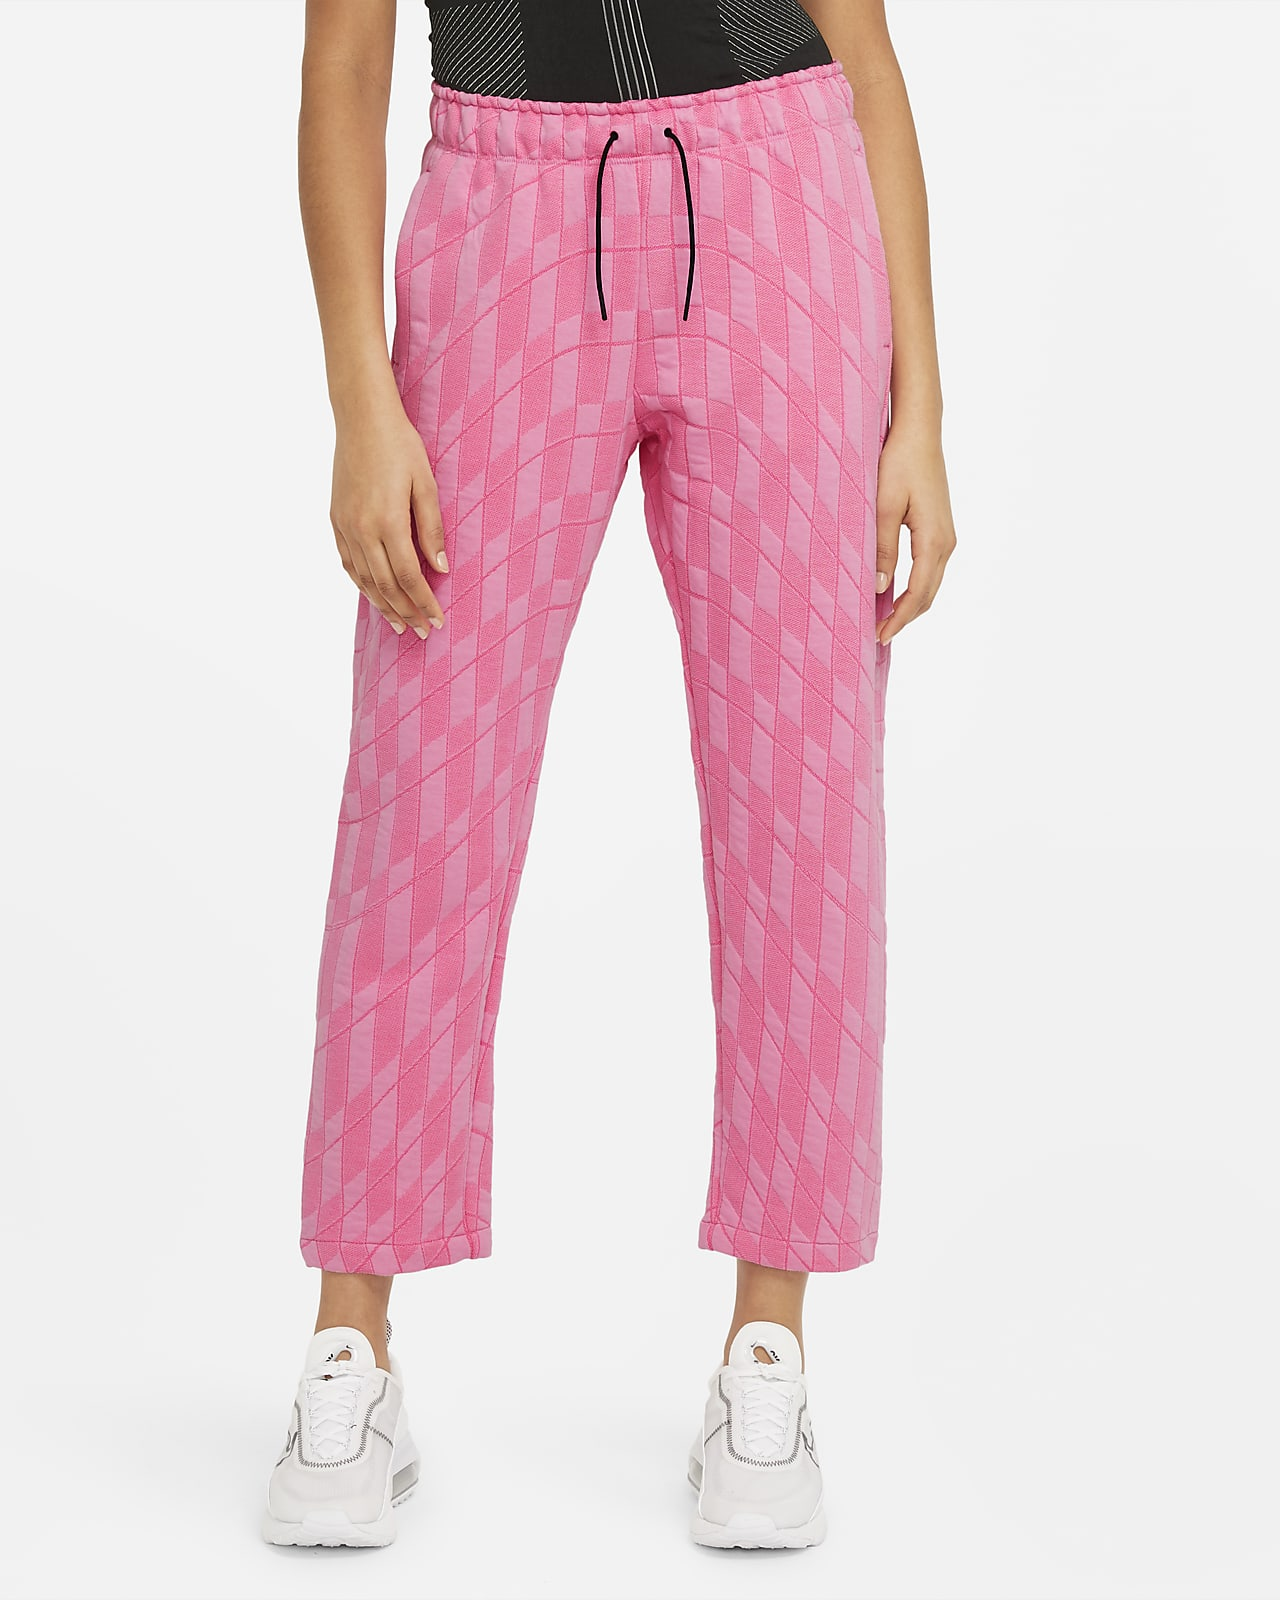 Nike Sportswear Tech Pack Women's Trousers